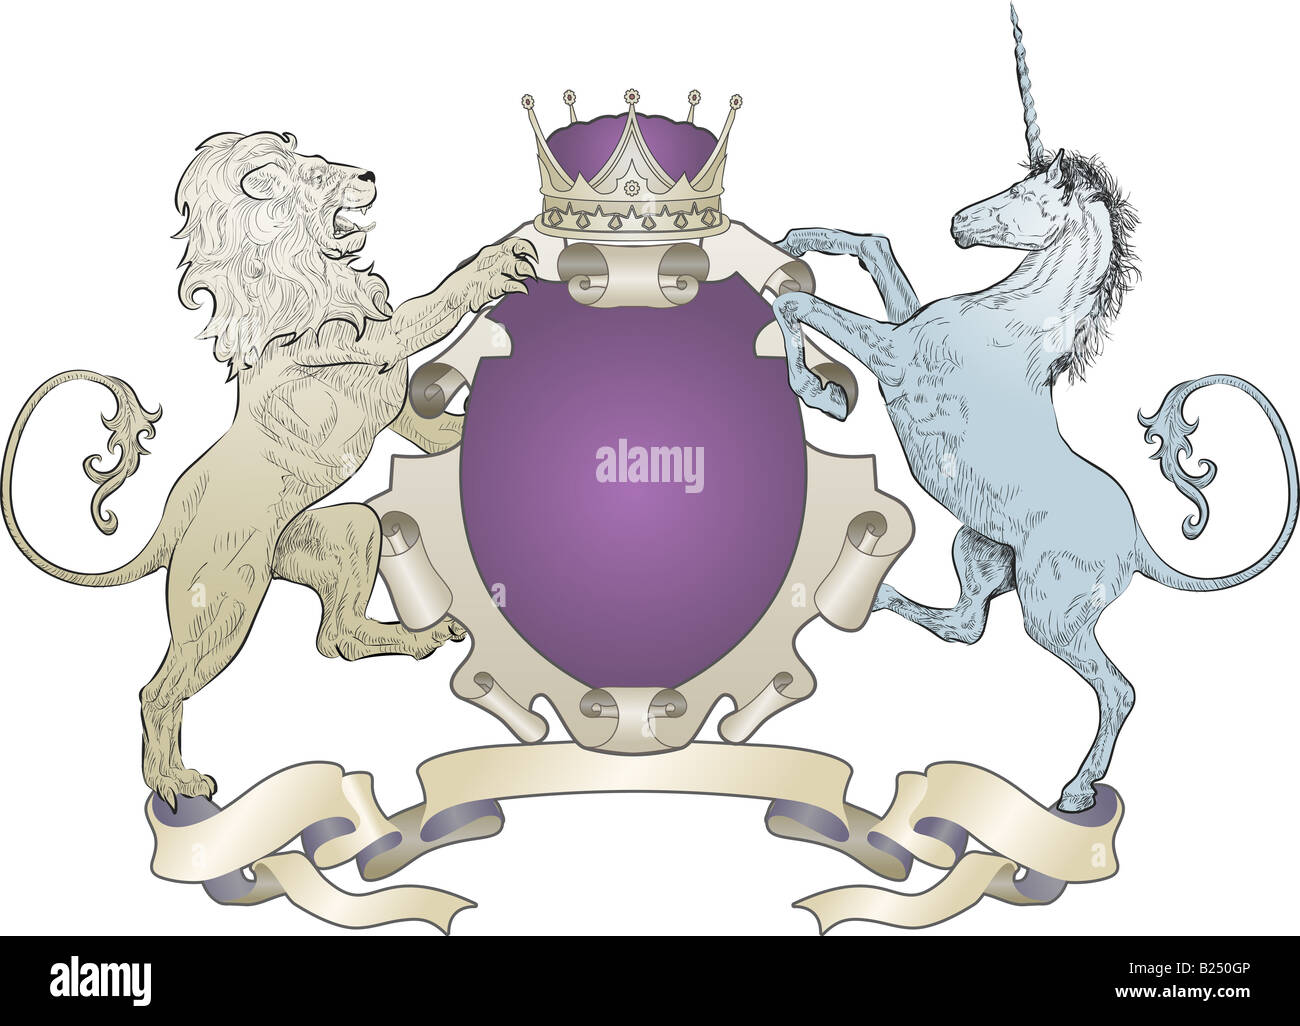 Lion and Unicorn Coat of Arms (no leaves) A shield coat of arms element featuring a lion, unicorn and crown - Stock Image